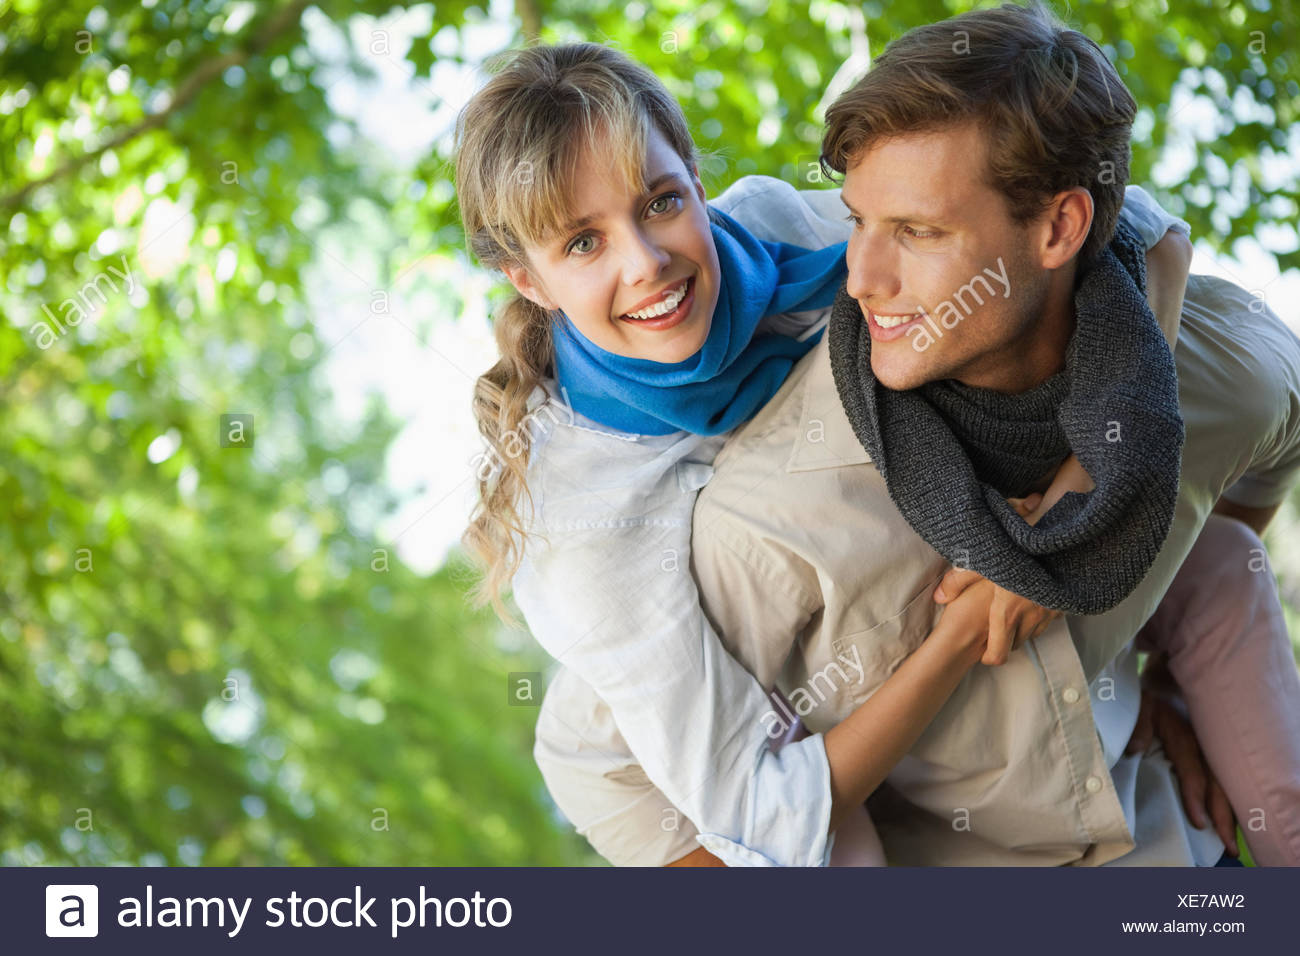 Cute woman smiling at camera in the park while getting a piggy back - Stock Image